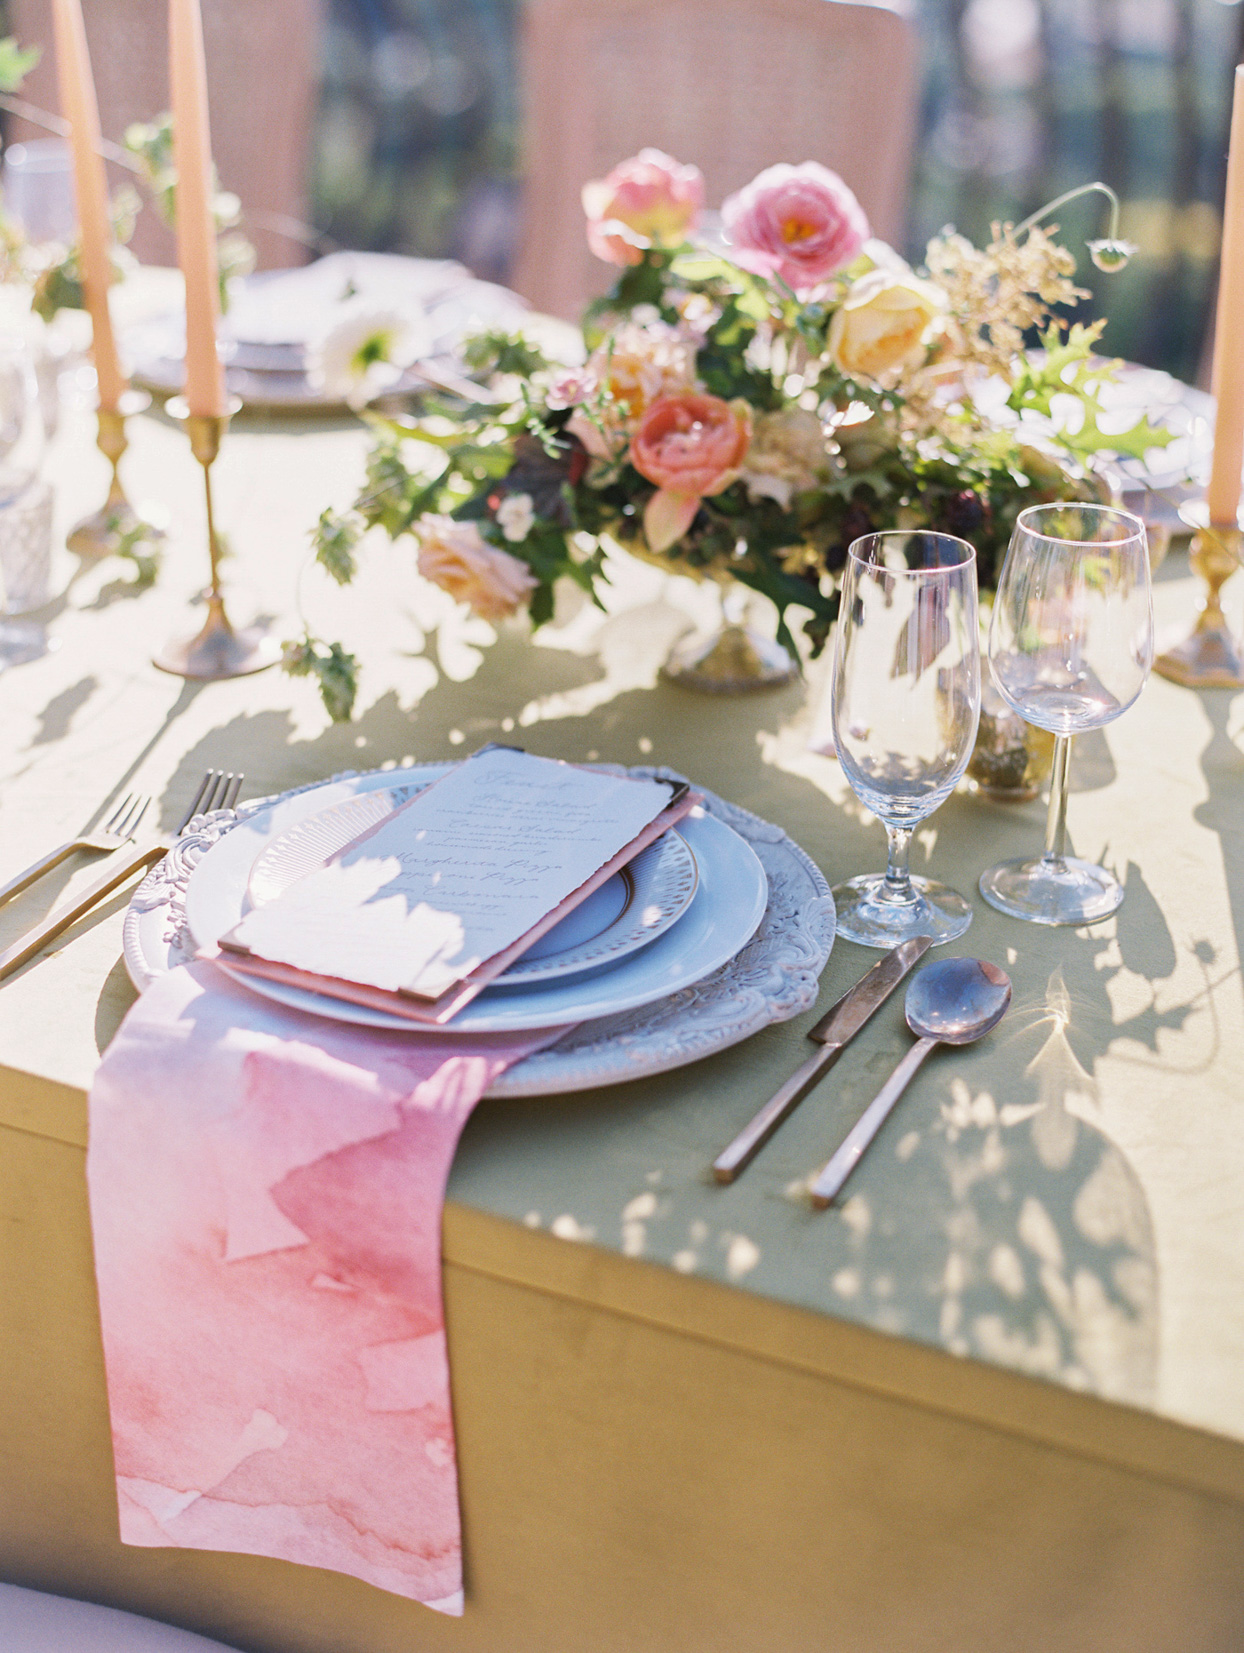 elegant wedding place setting with pink painted napkin